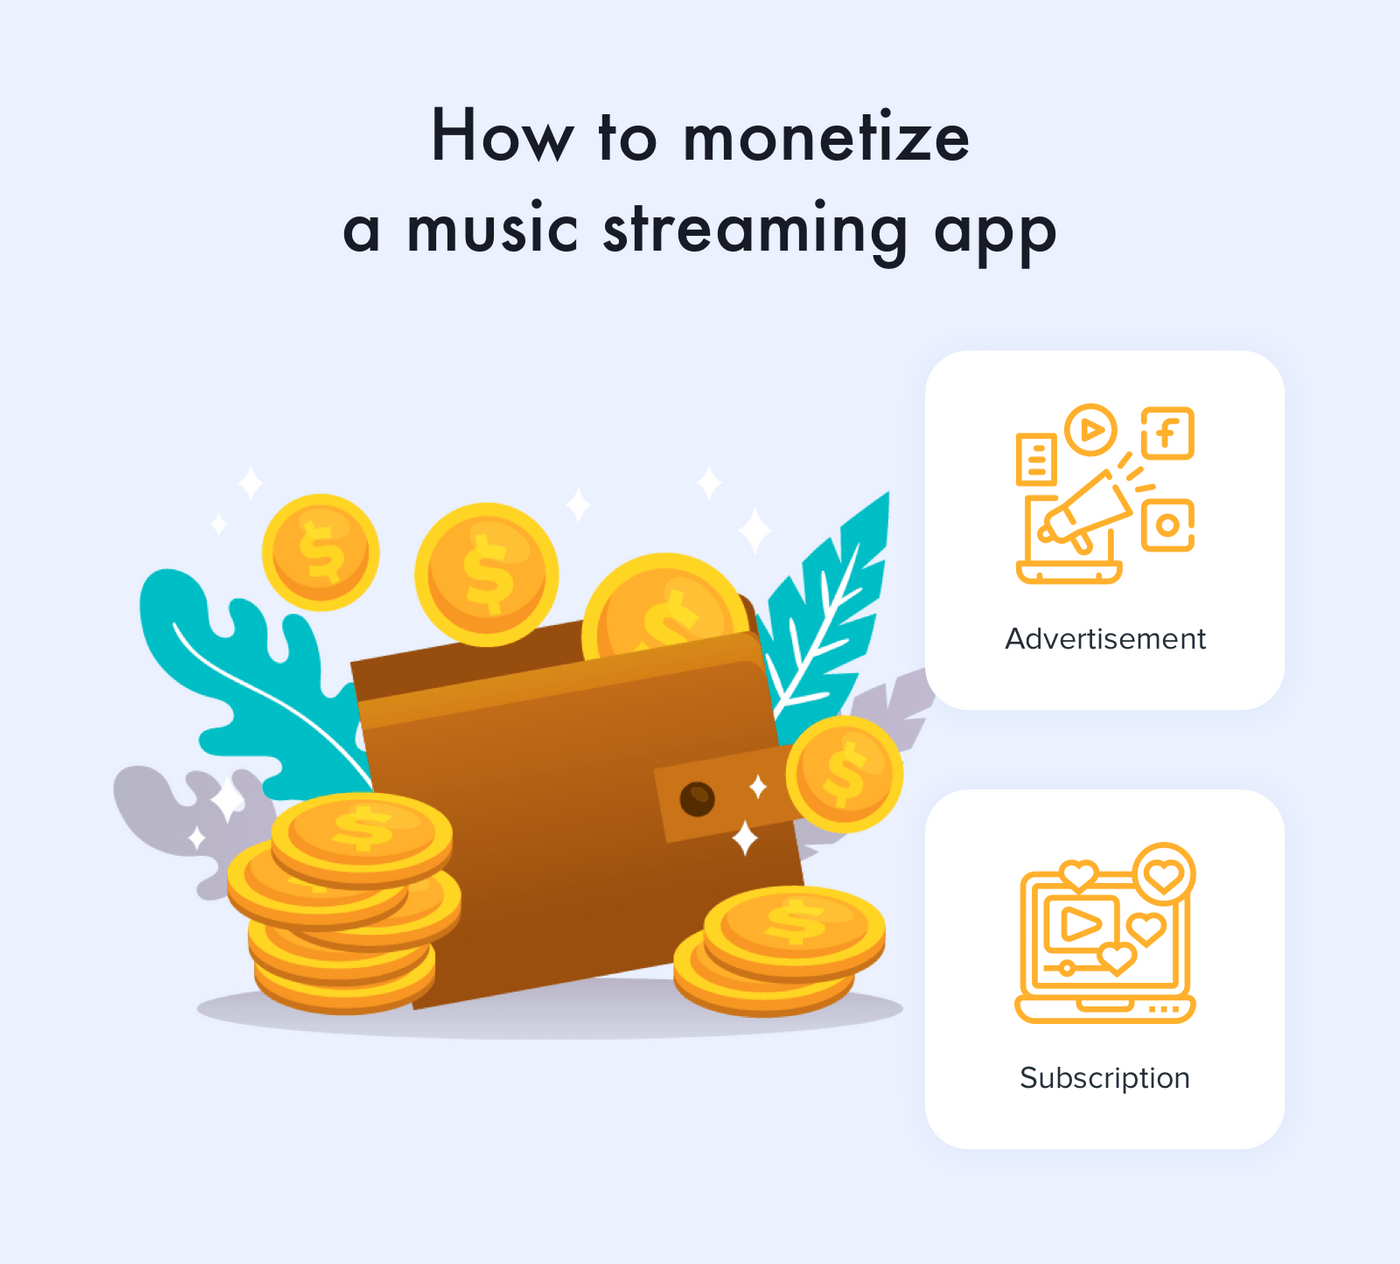 How to monetize a music streaming app